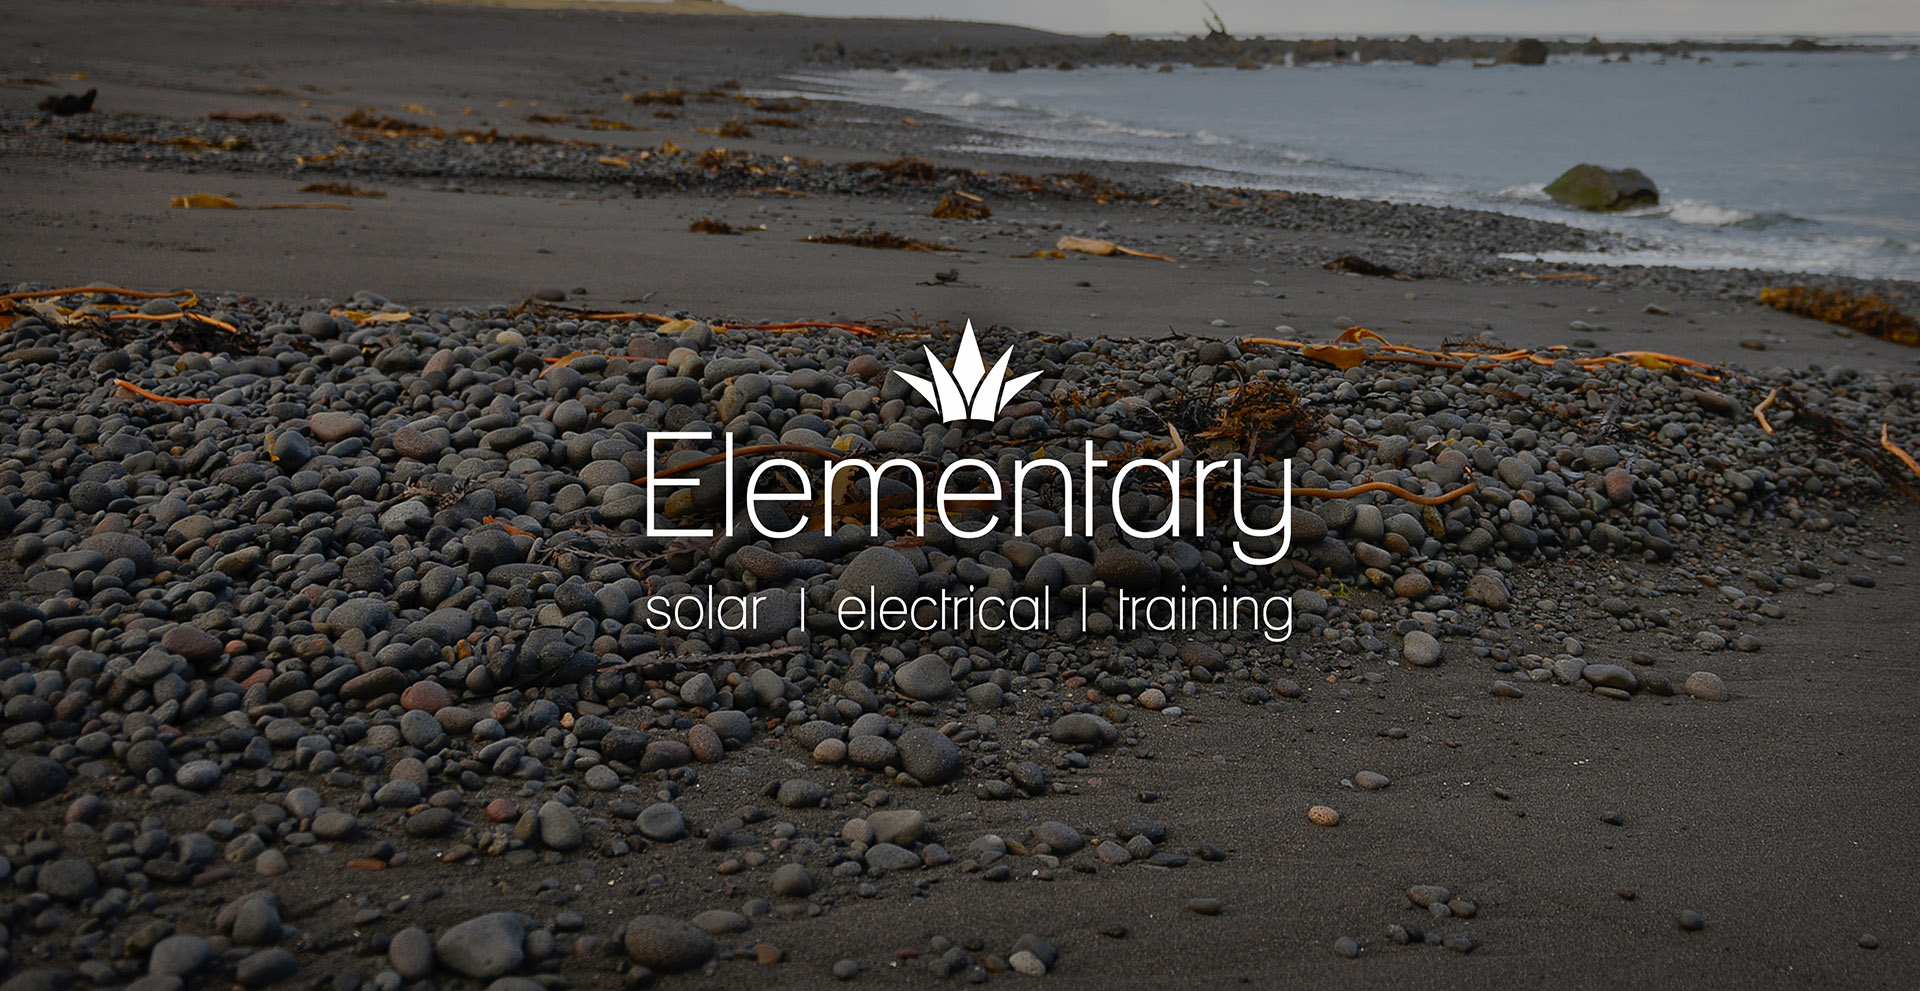 Elementary: solar, electrical, training